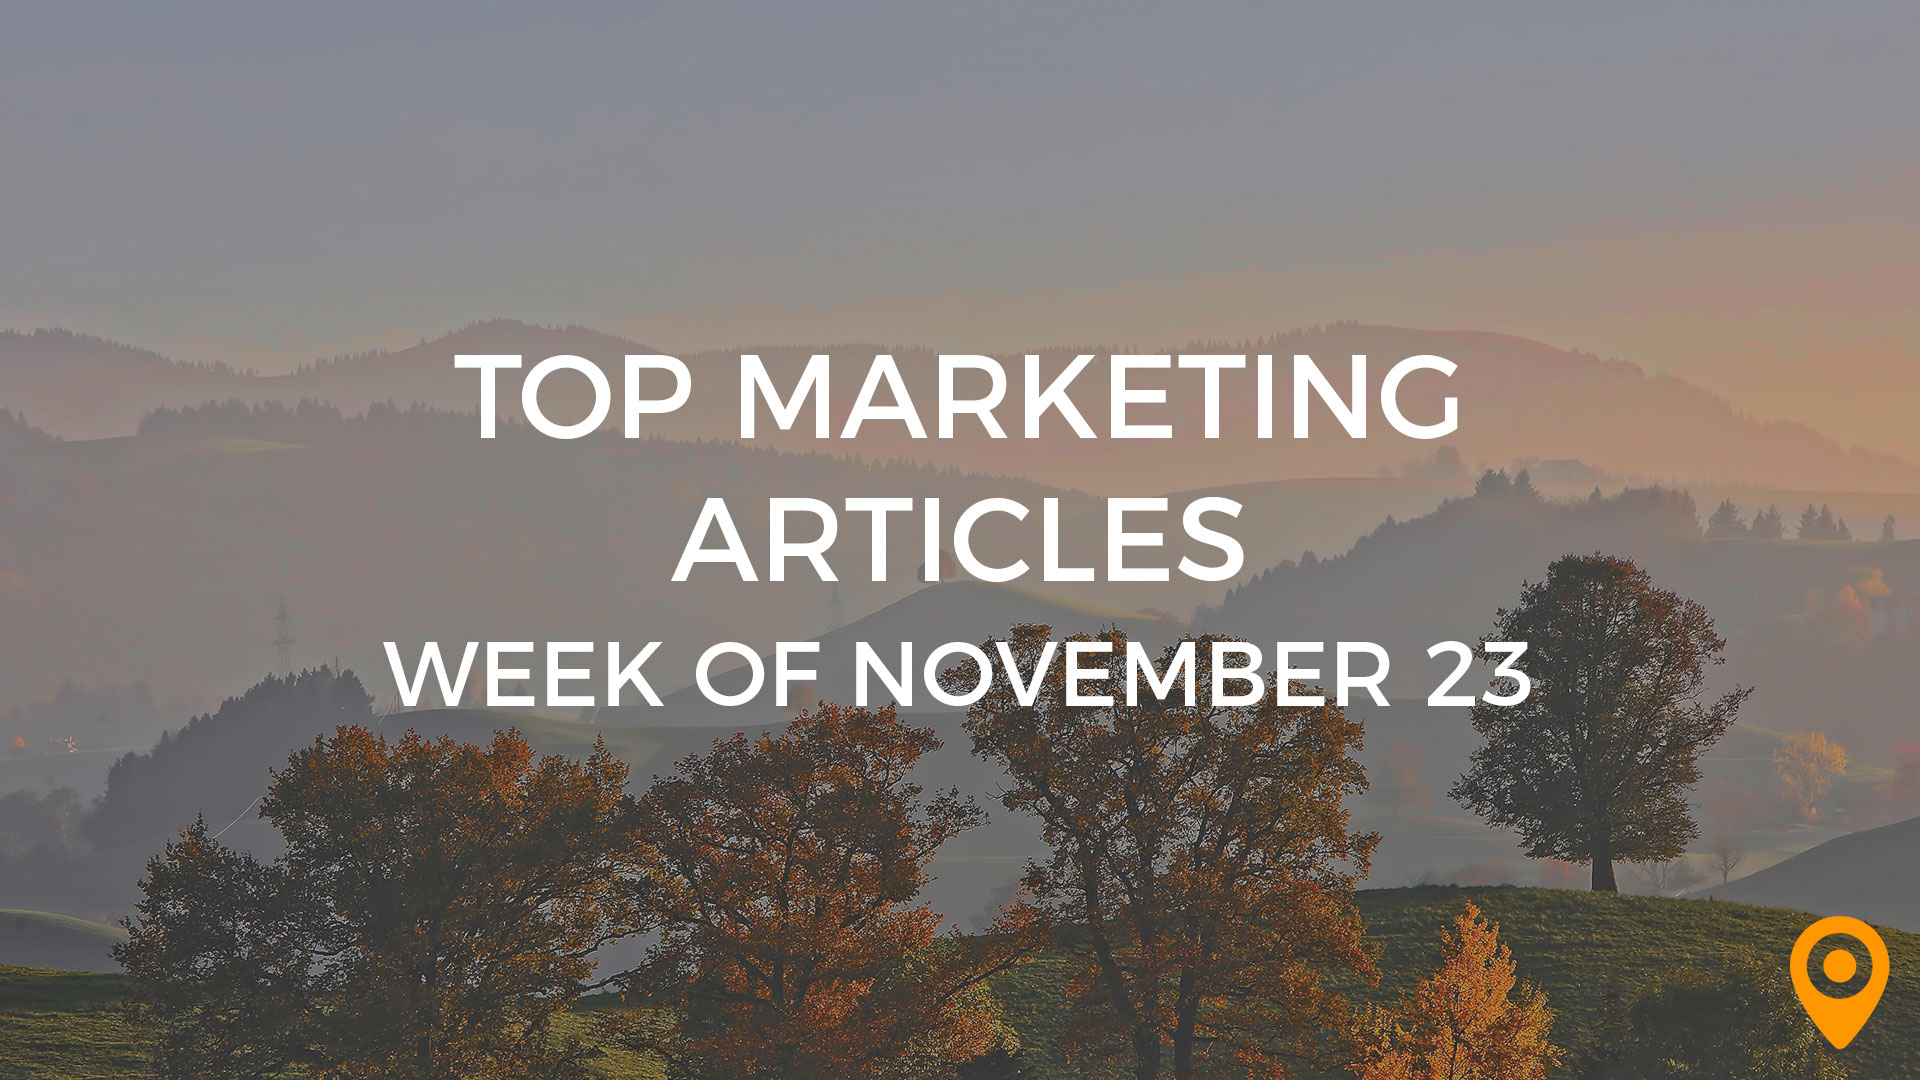 Top Marketing Articles - Week of November 23